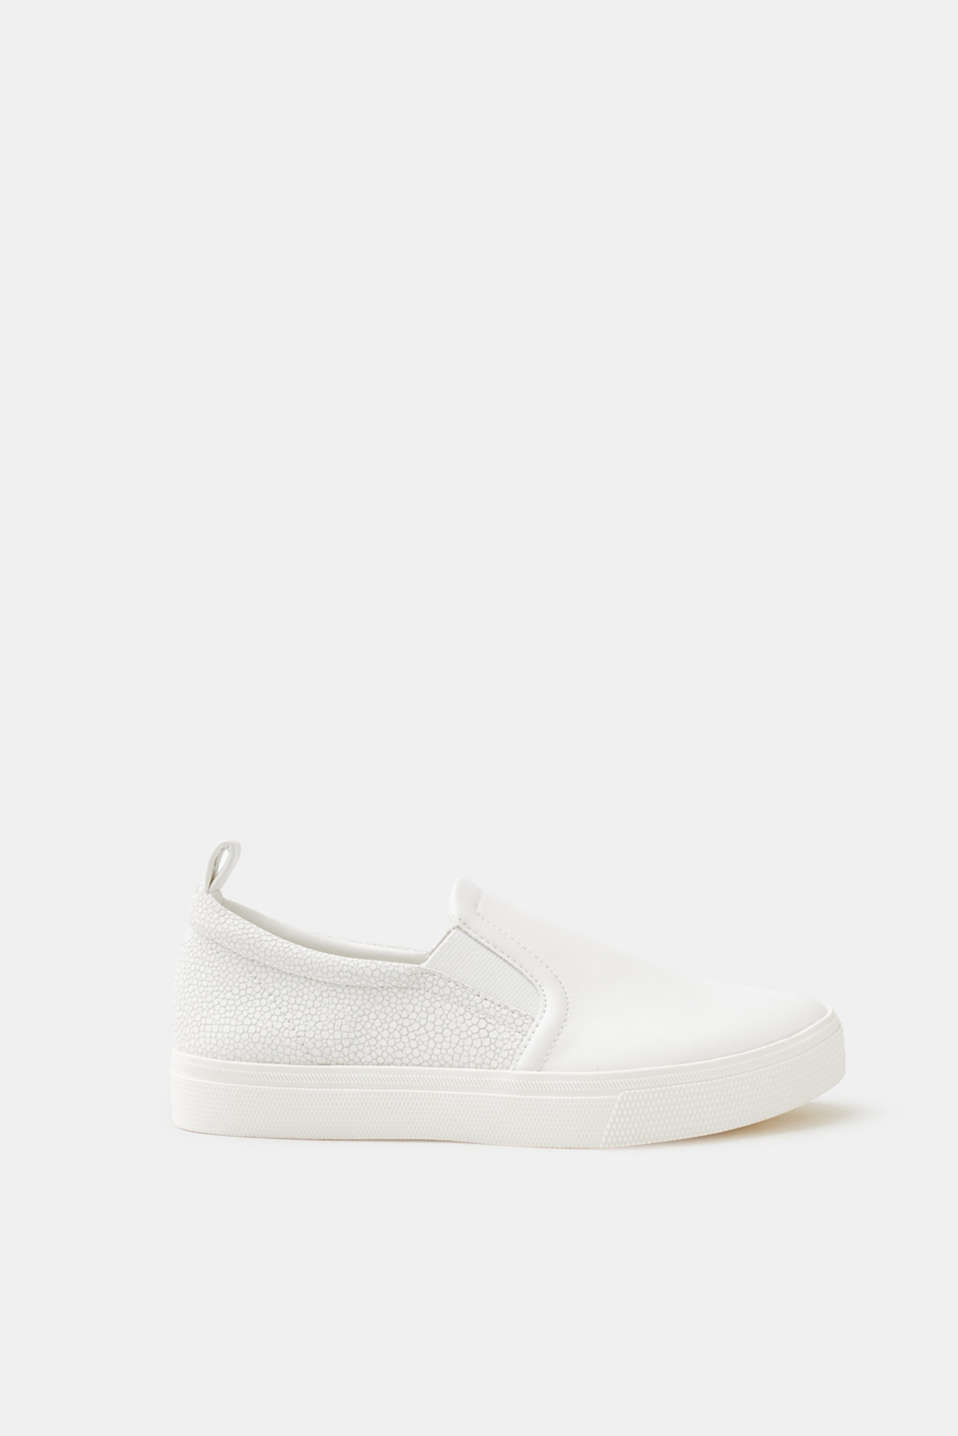 Esprit - Slip on-sneakers i skinnlook